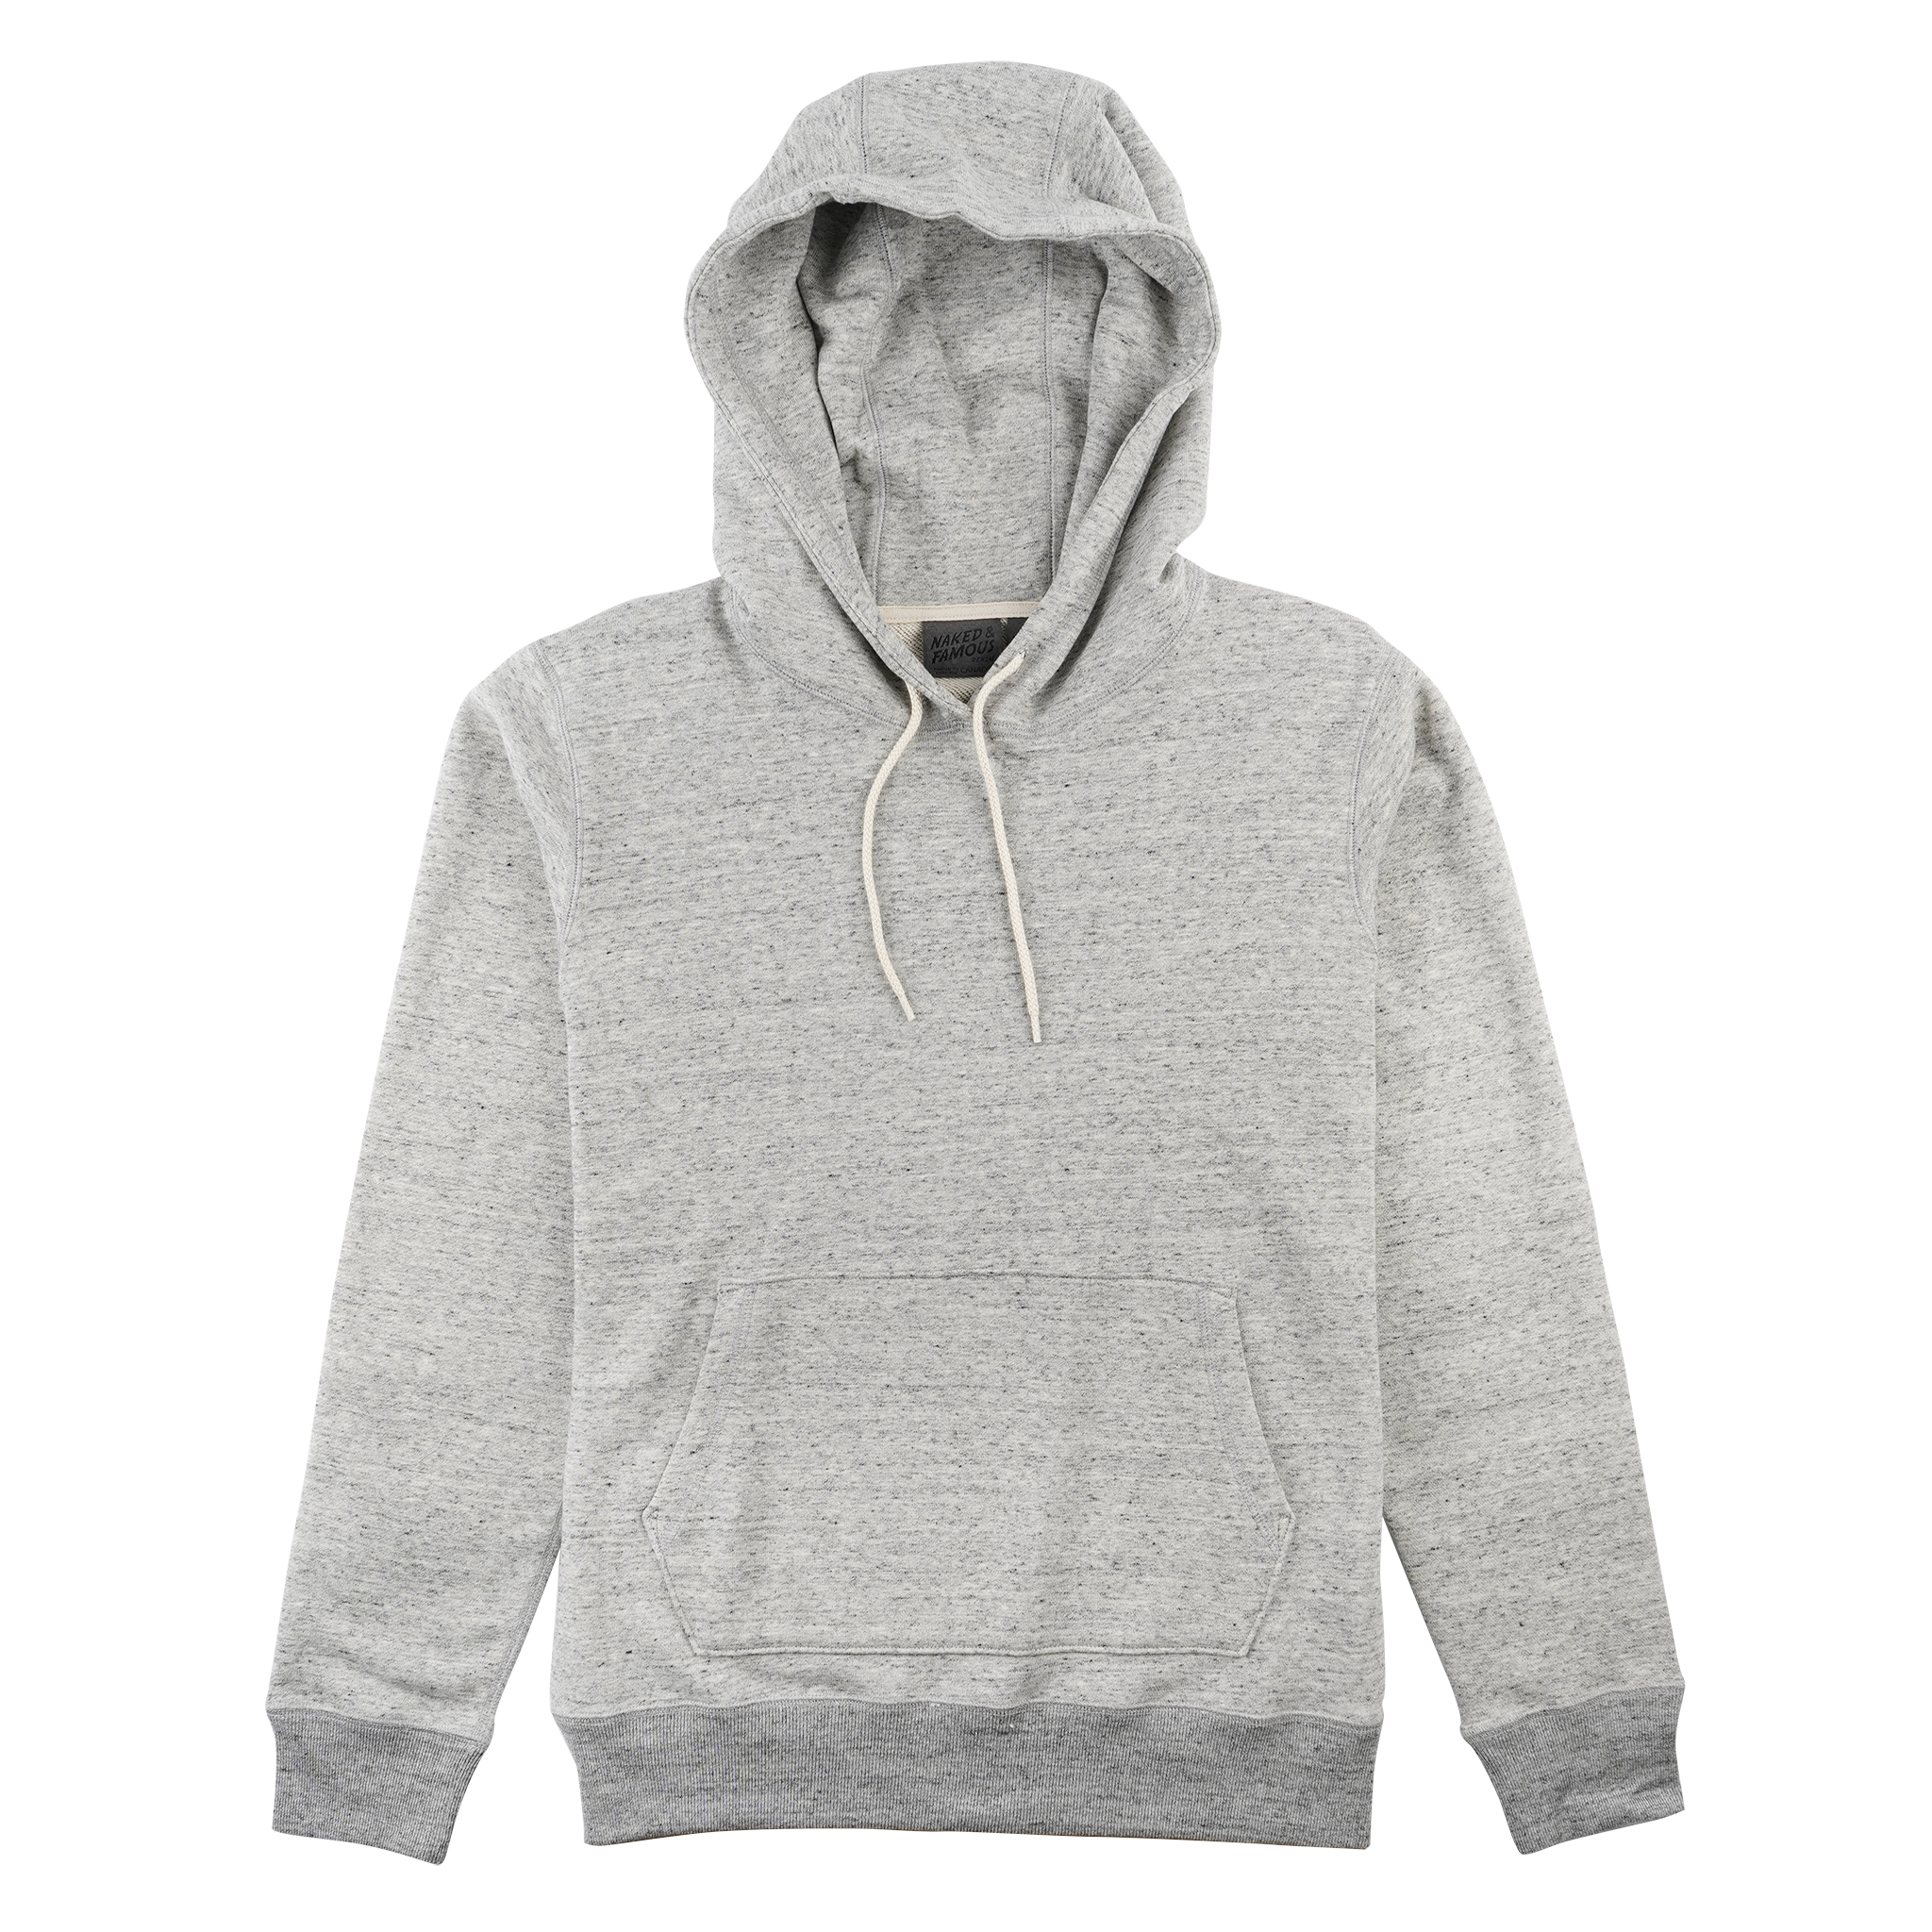 Heavyweight Terry - Grey - Pullover Hoodie